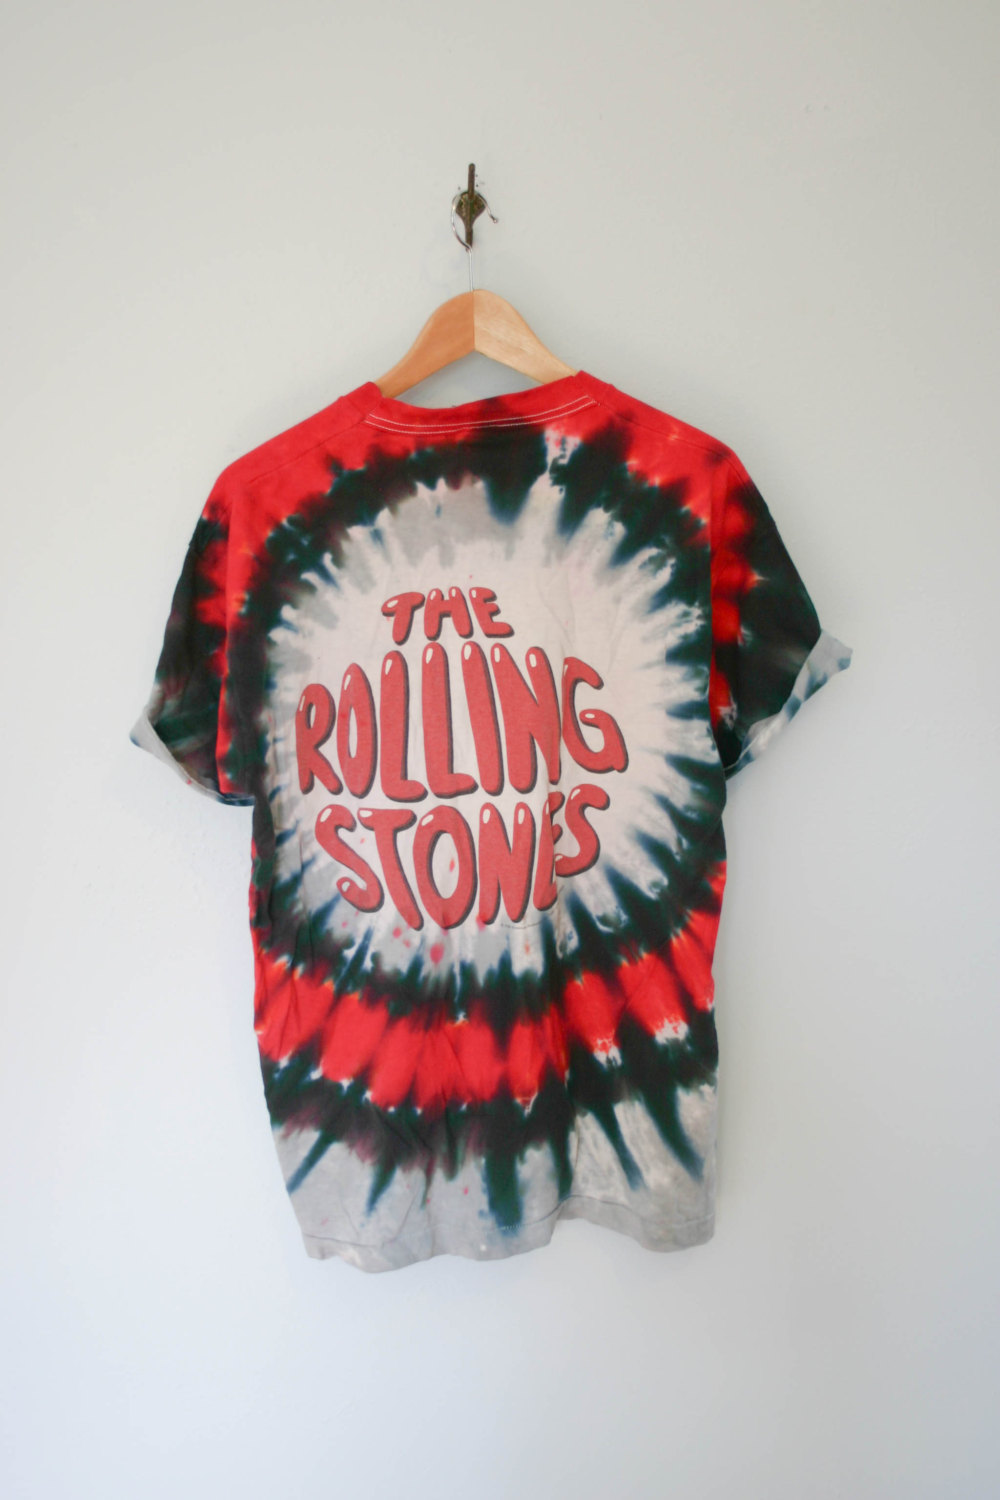 1990's Vintage Rolling Stones shirt tie dye psychedelic shirt size large